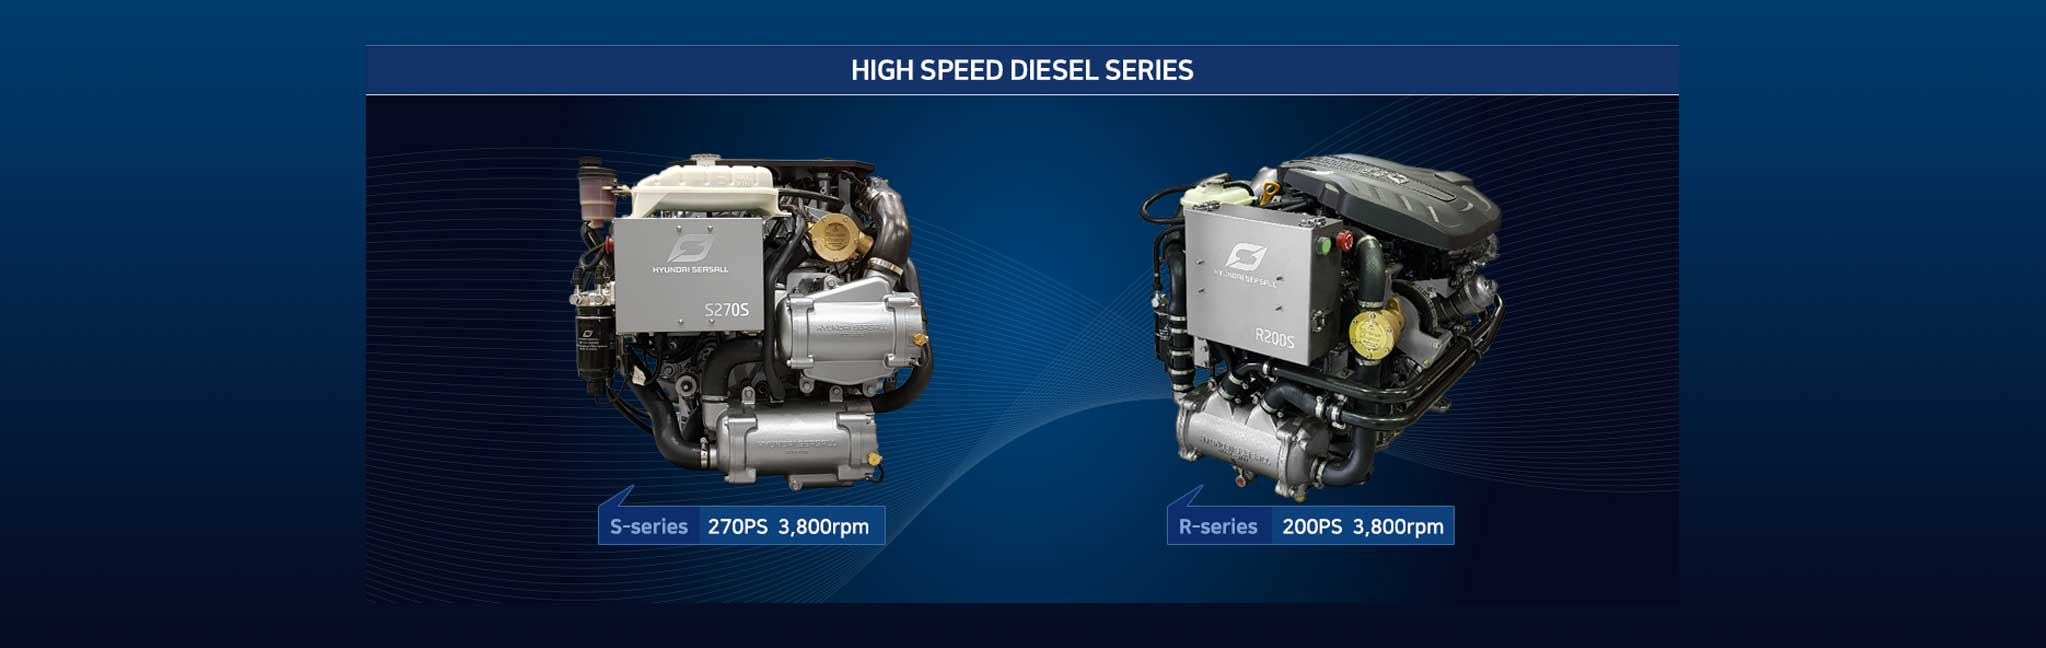 Hyundai SeasAll - High Speed Diesel